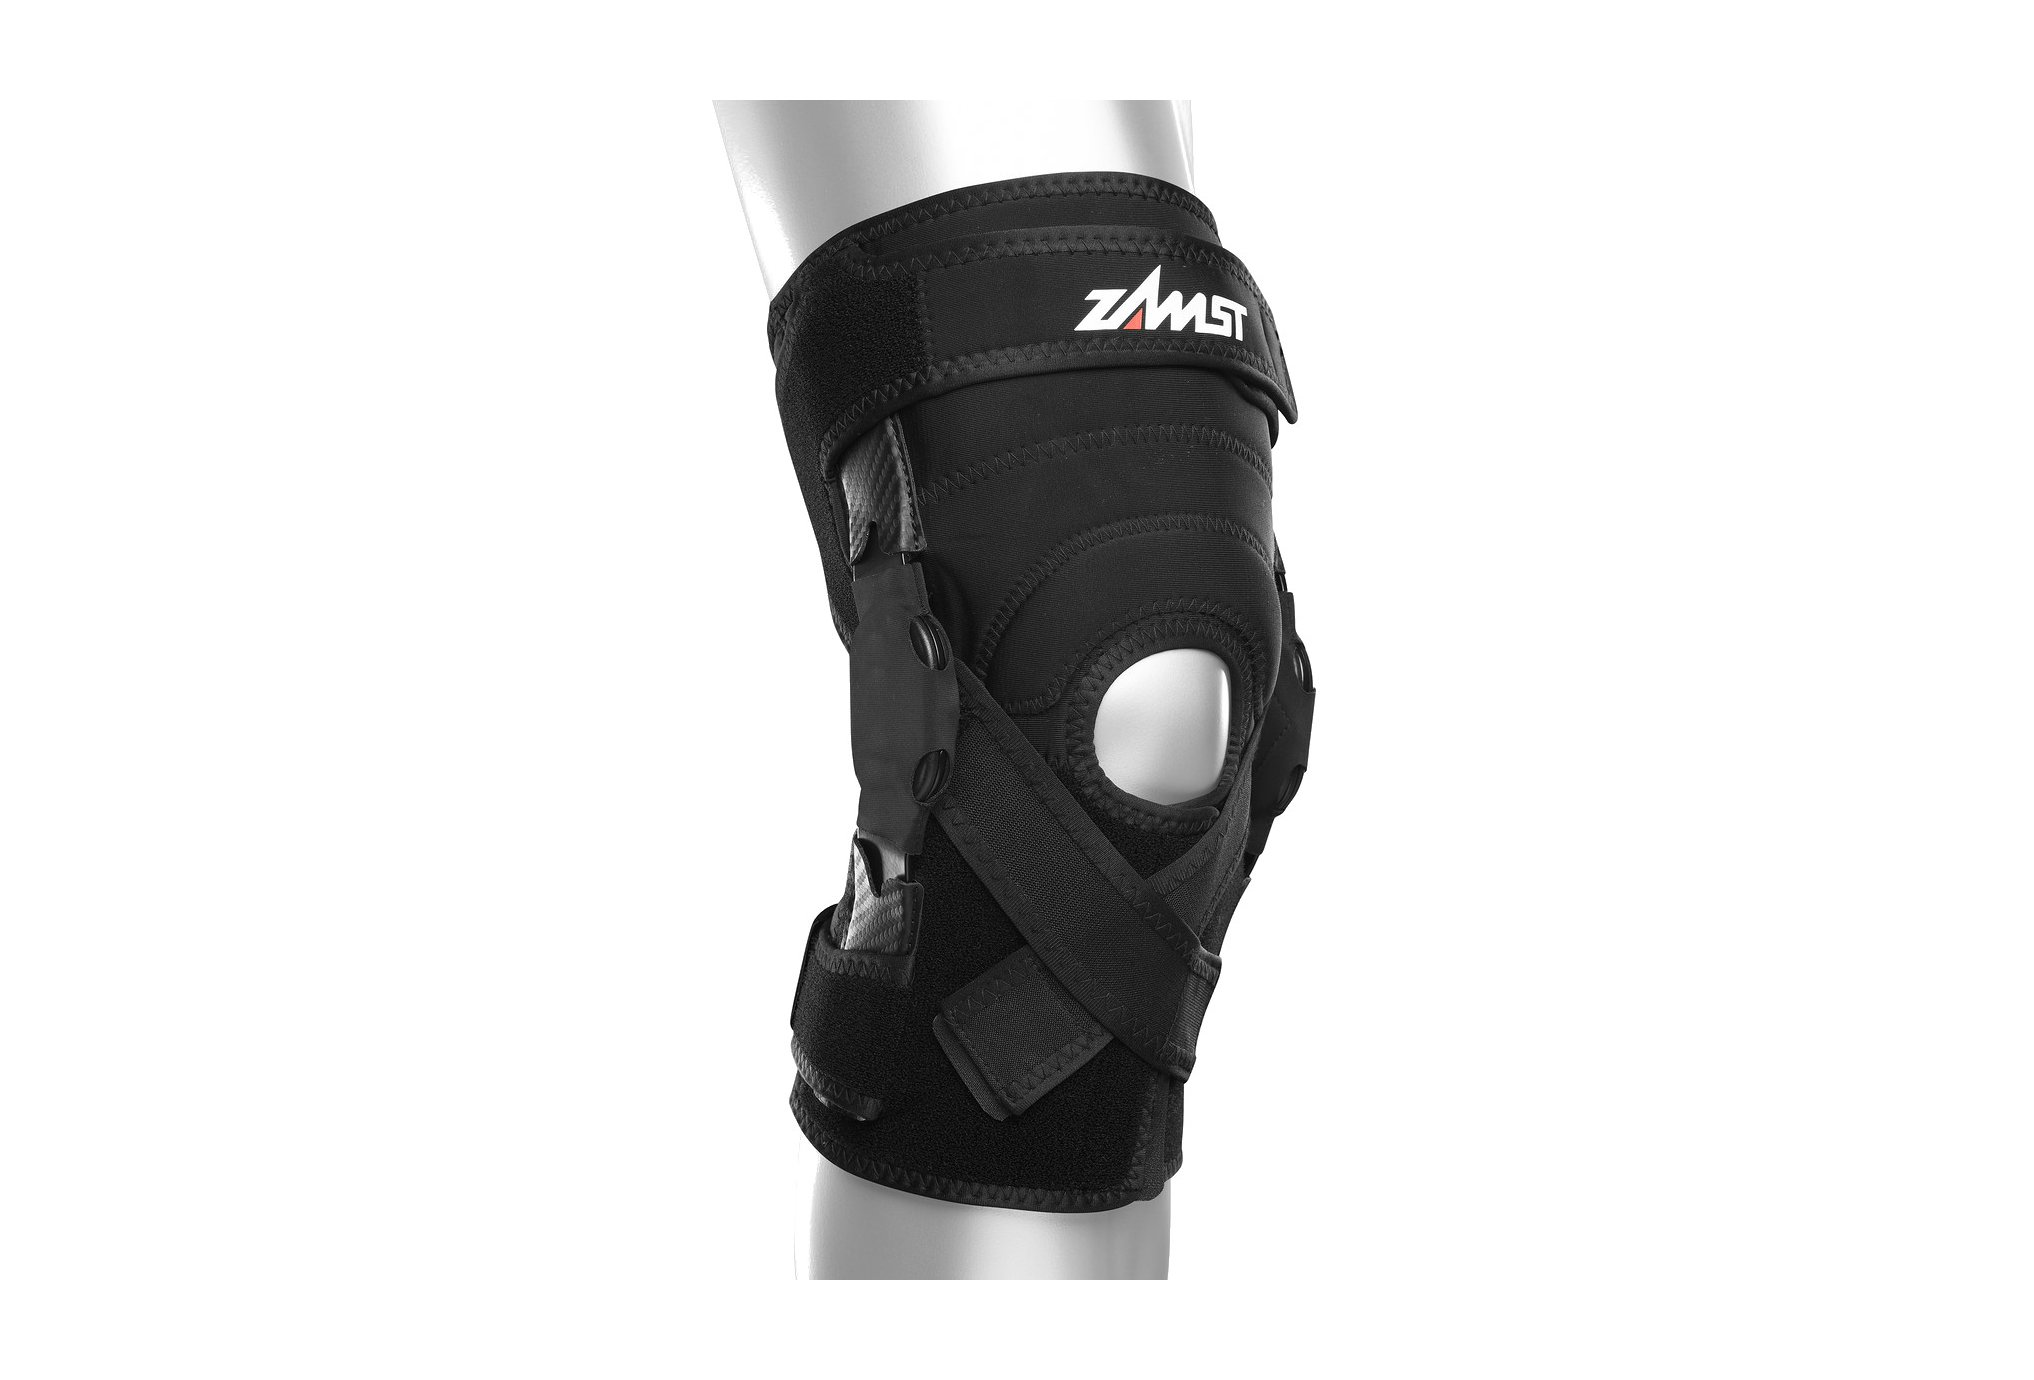 Zamst Genouillère ZK-X Protection musculaire & articulaire